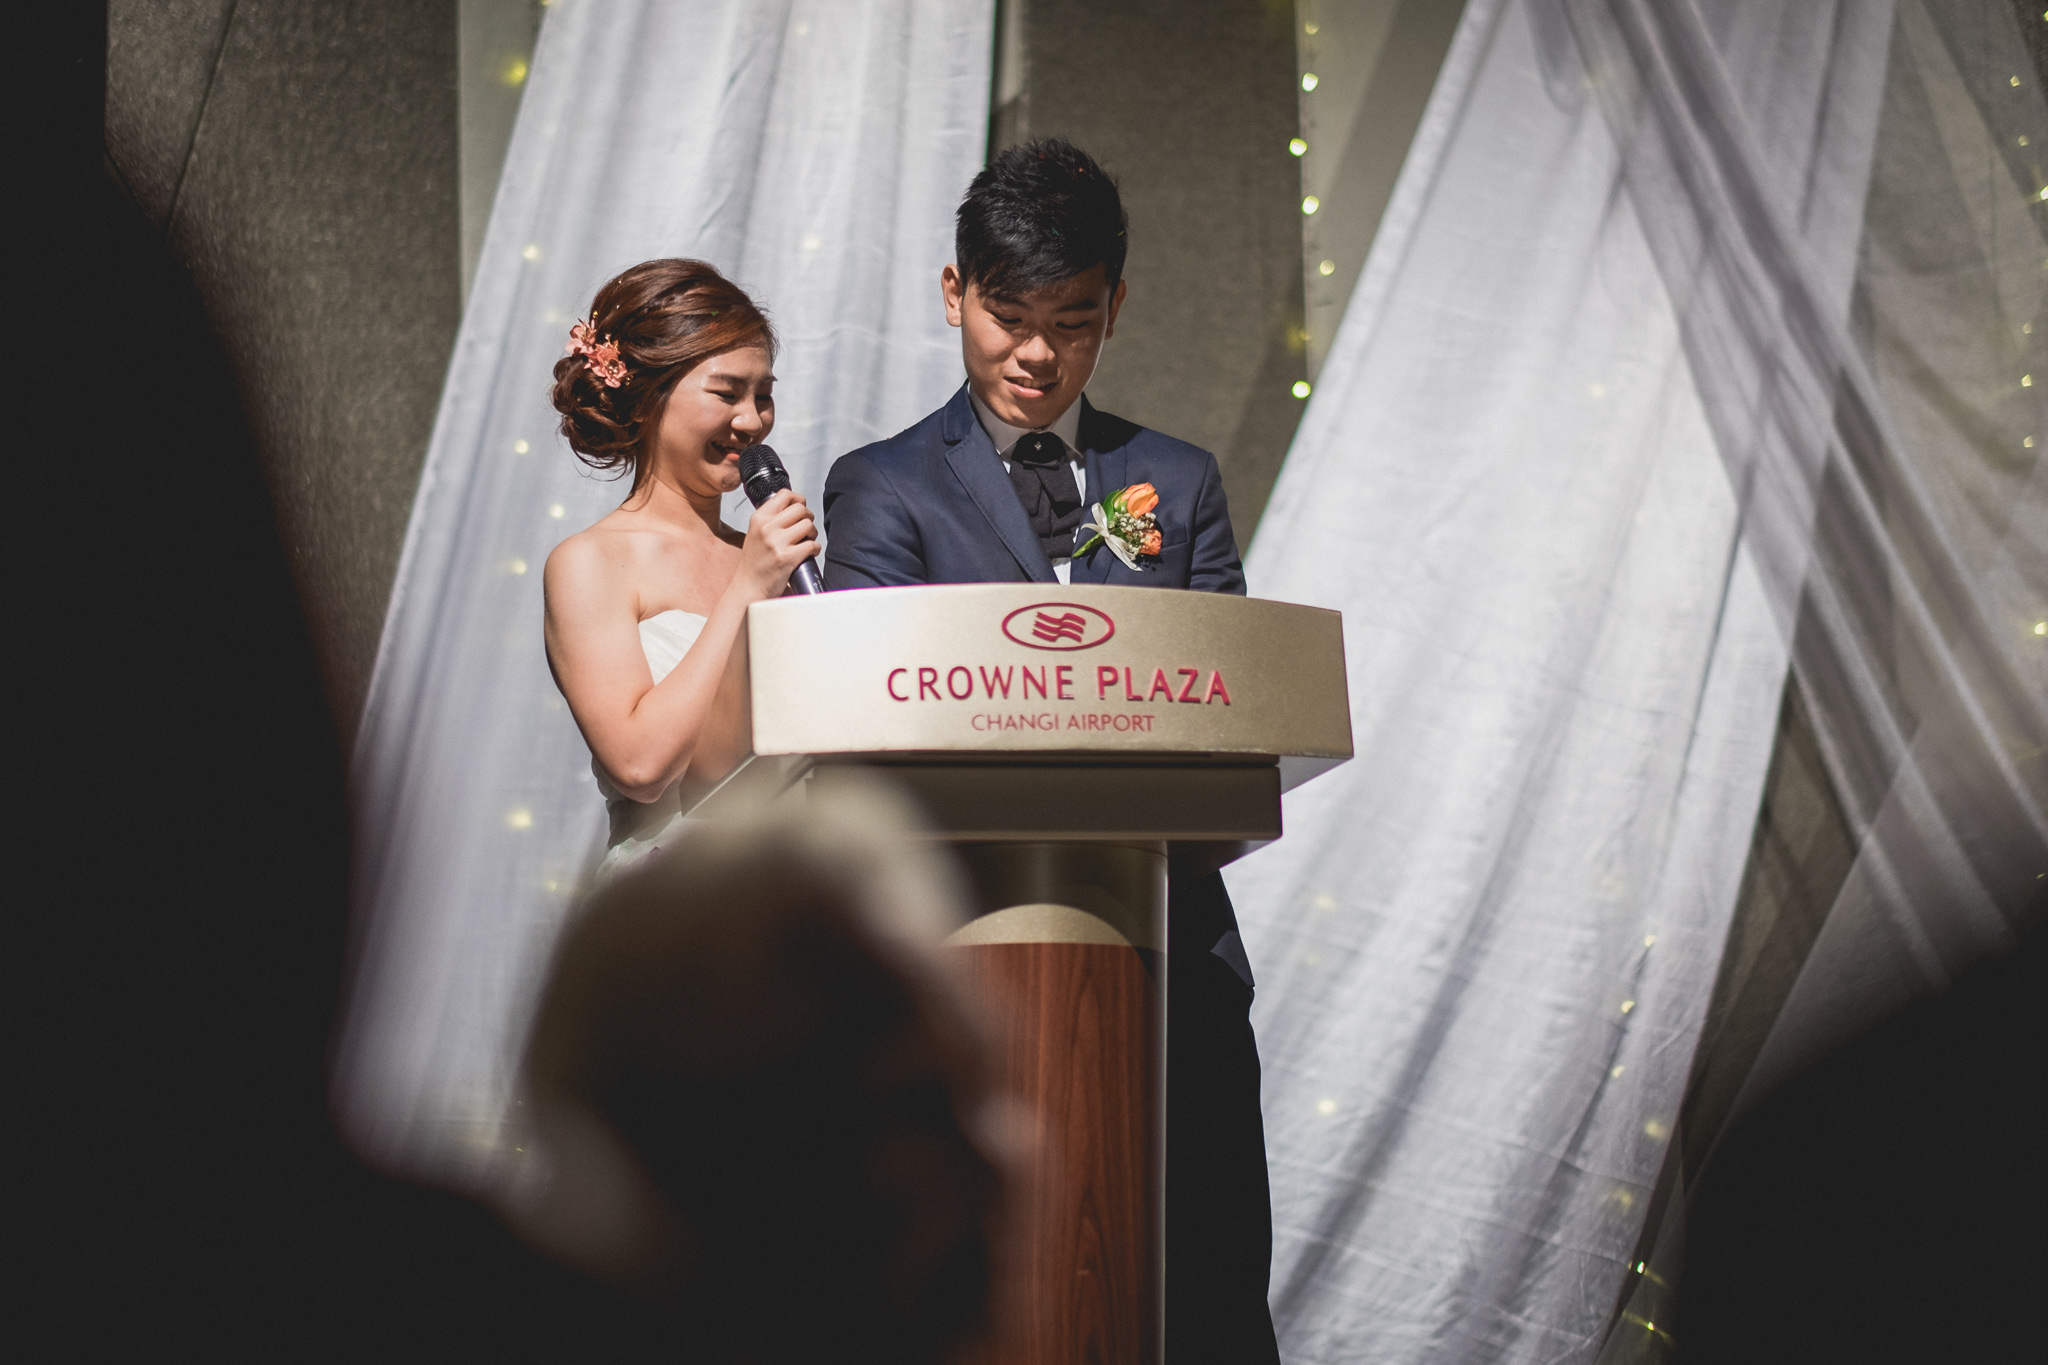 Juxtapose Pix - Wedding - Clarice & Zhengyong - changi airport crowne plaza 00040.jpg